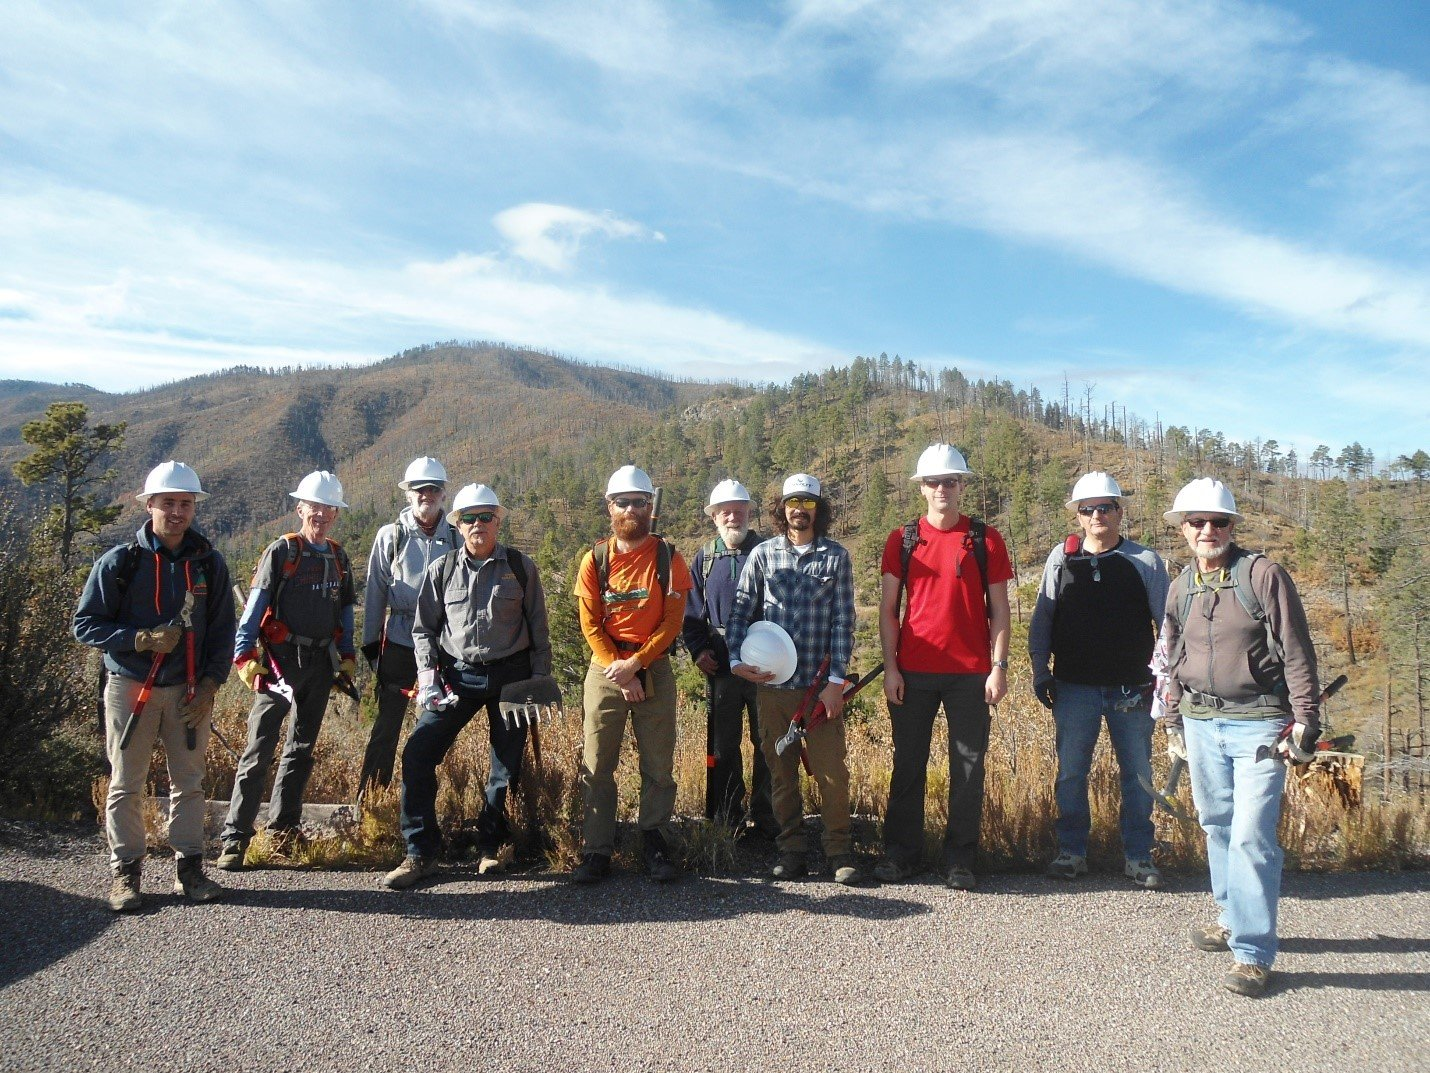 Volunteers from the Sawyer Peak Trail Project.  These volunteers worked on Trail No. 79 from Emory Pass to the Saddle below Sawyer Peak.